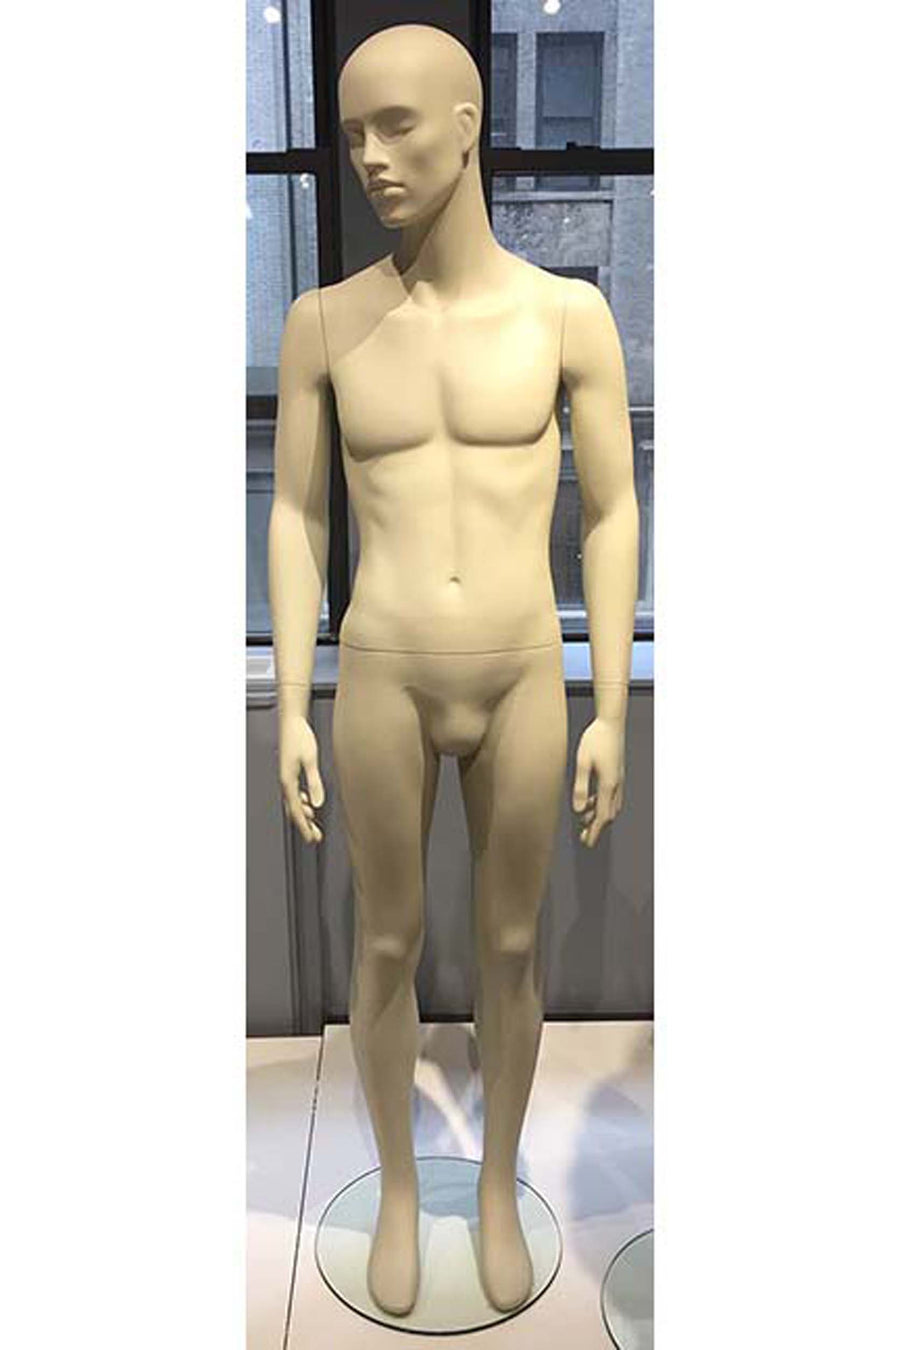 oyster white male mannequin with head turned slightly right and arms and legs relaxed at sides